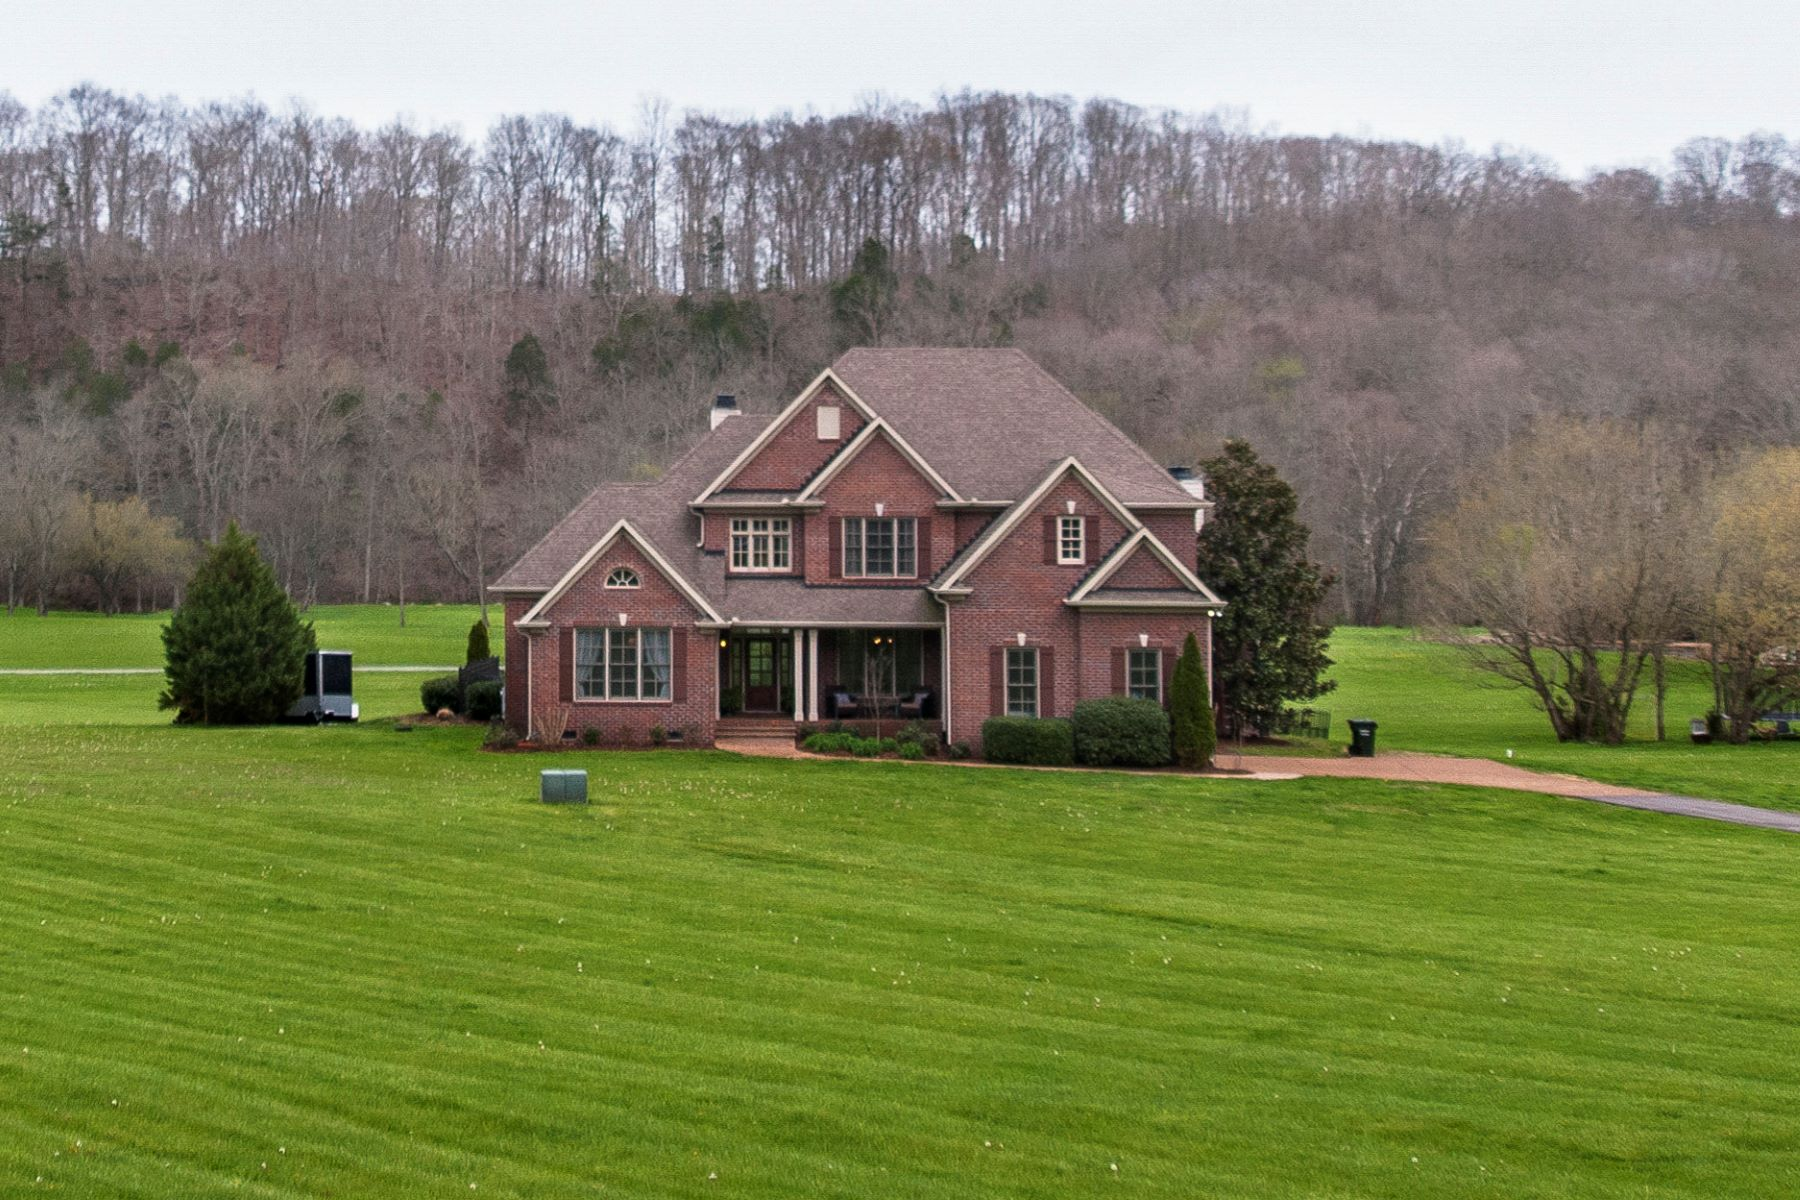 Single Family Home for Sale at Breathtaking Views 5210 Old Harding Rd Franklin, Tennessee 37064 United States